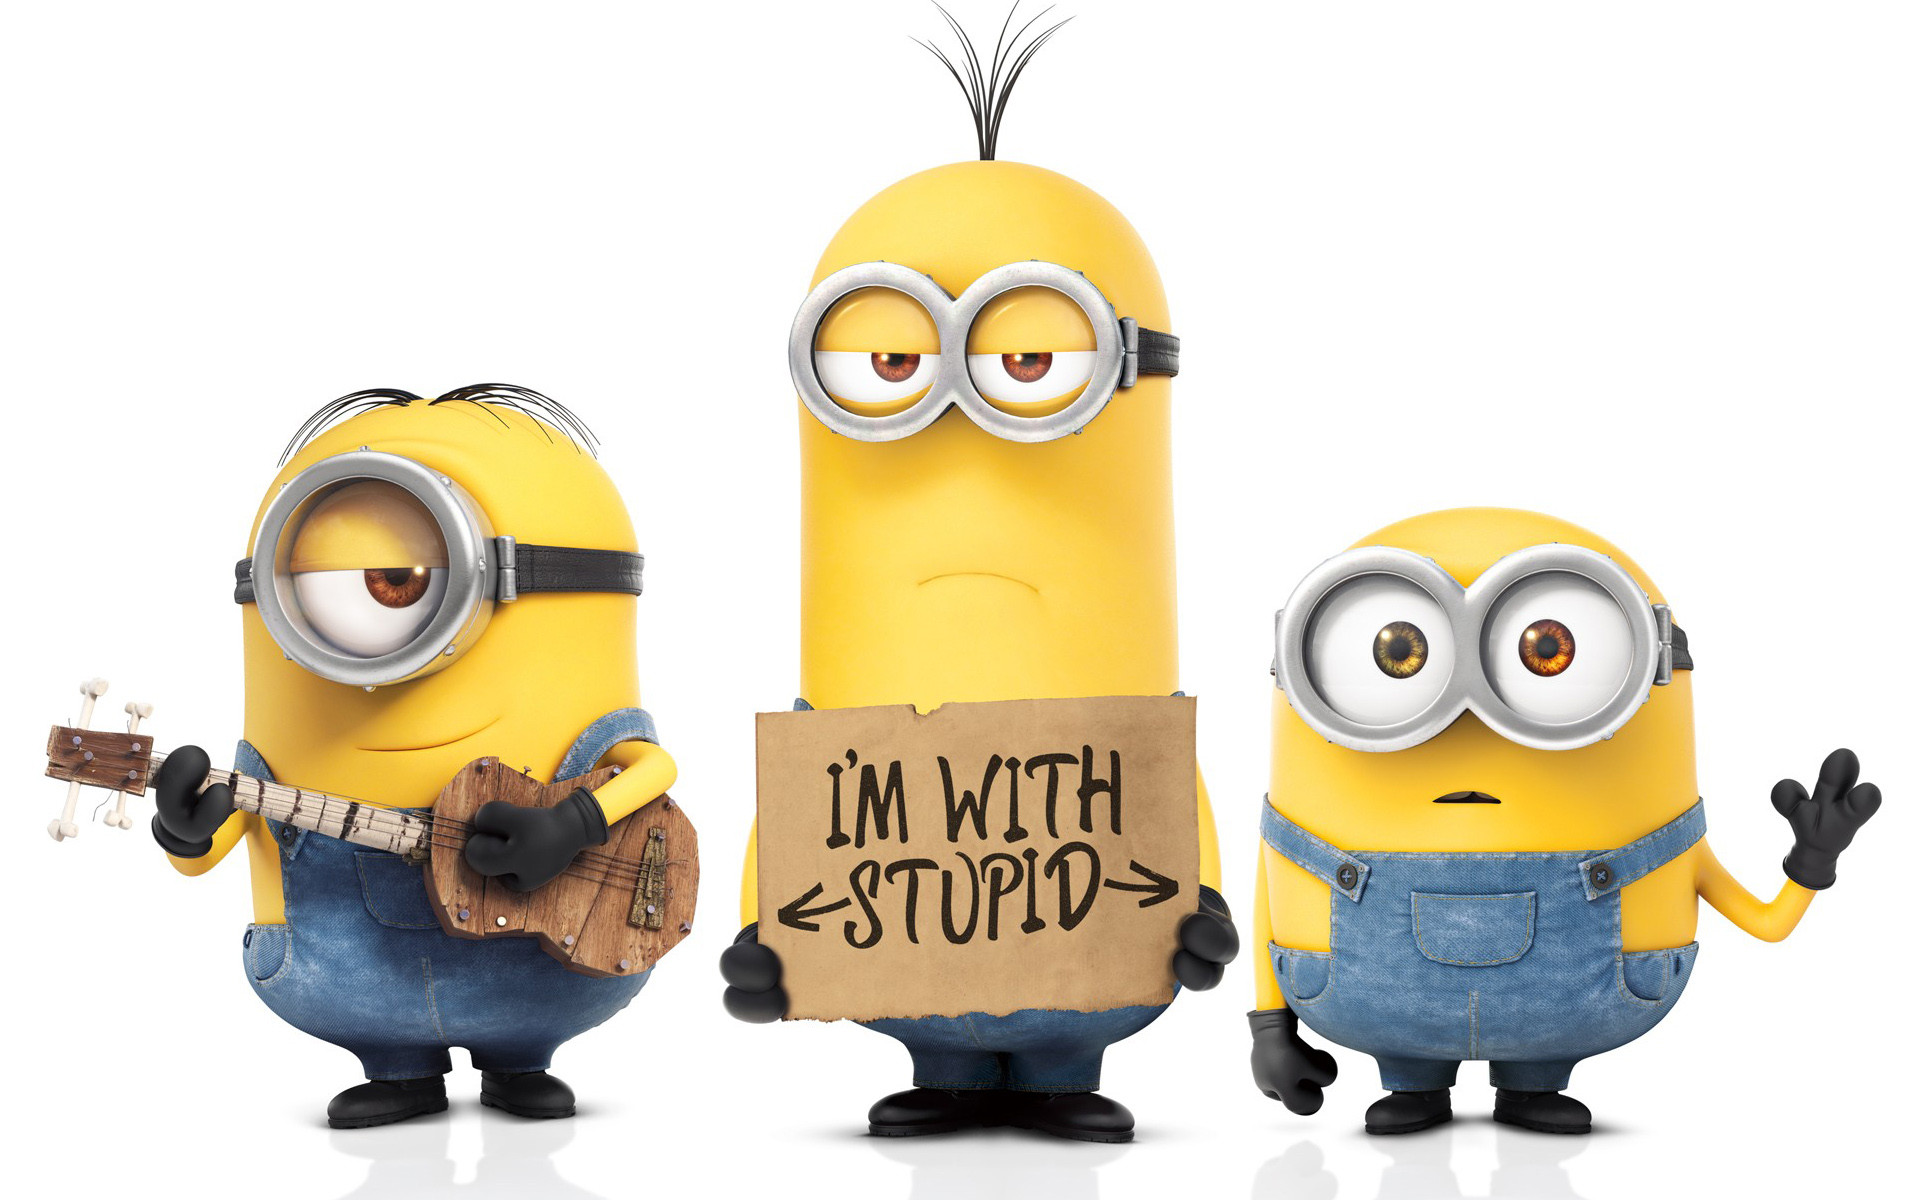 1920x1200 Cute Minion Wallpapers HD for Desktop (11)